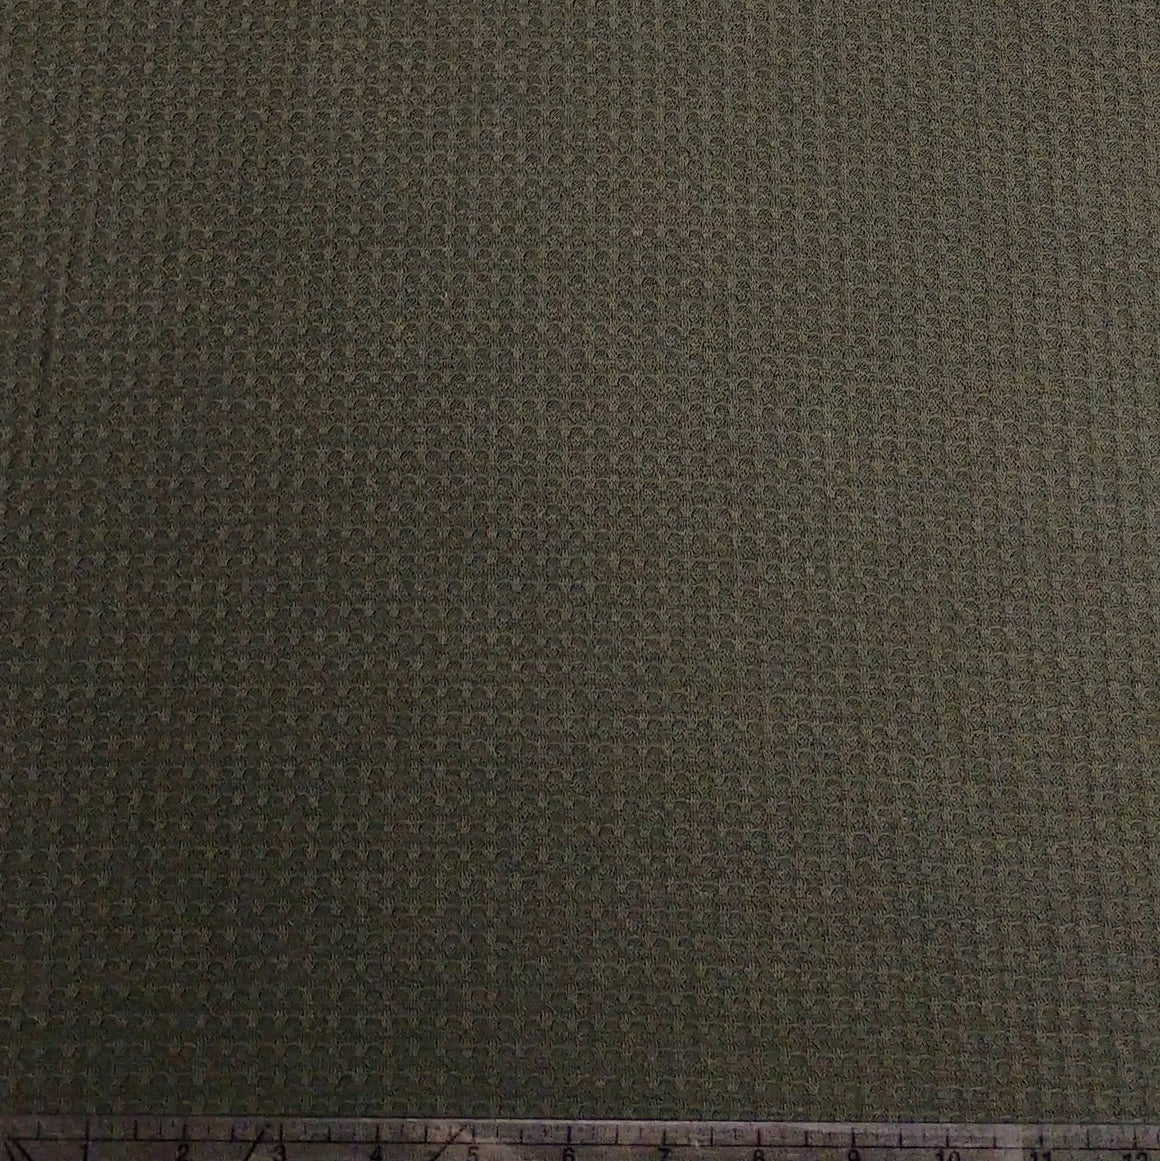 Olive Green Waffle Knit Fabric, 1 Yard - Raspberry Creek Fabrics